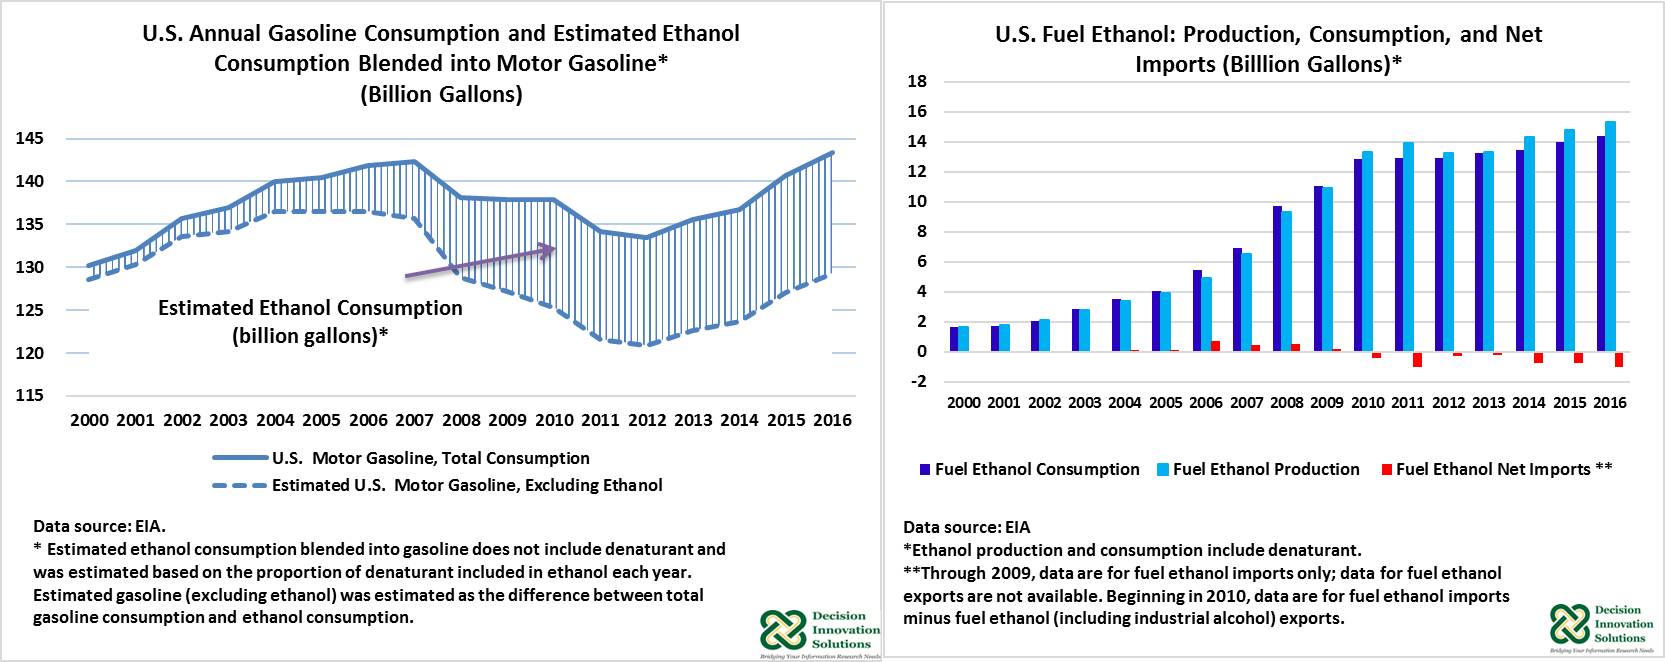 U.S. Annual Gasoline Consumptiona dn Estimated Ethanol Consumption blended into motor gasoline